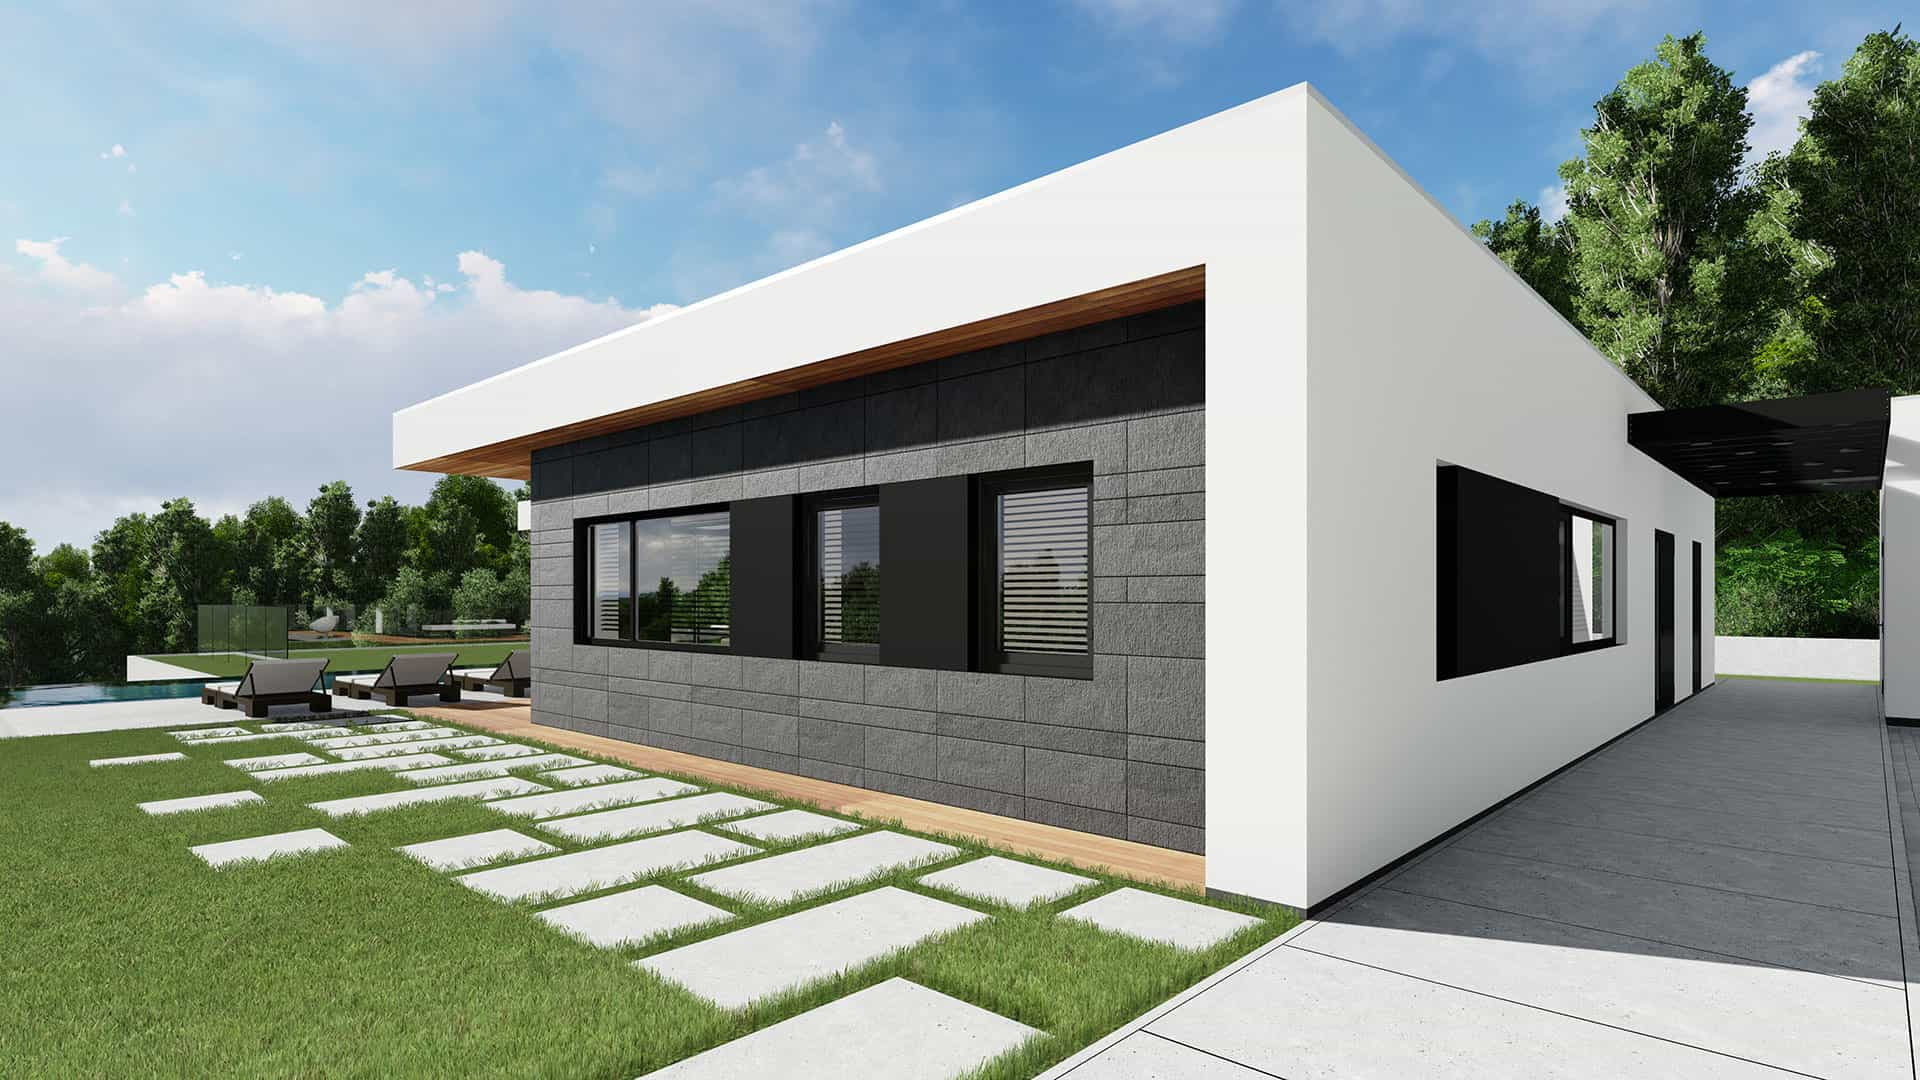 Modern Unexpected Concrete Flat Roof House Plans. Stone panels paved pathwalk